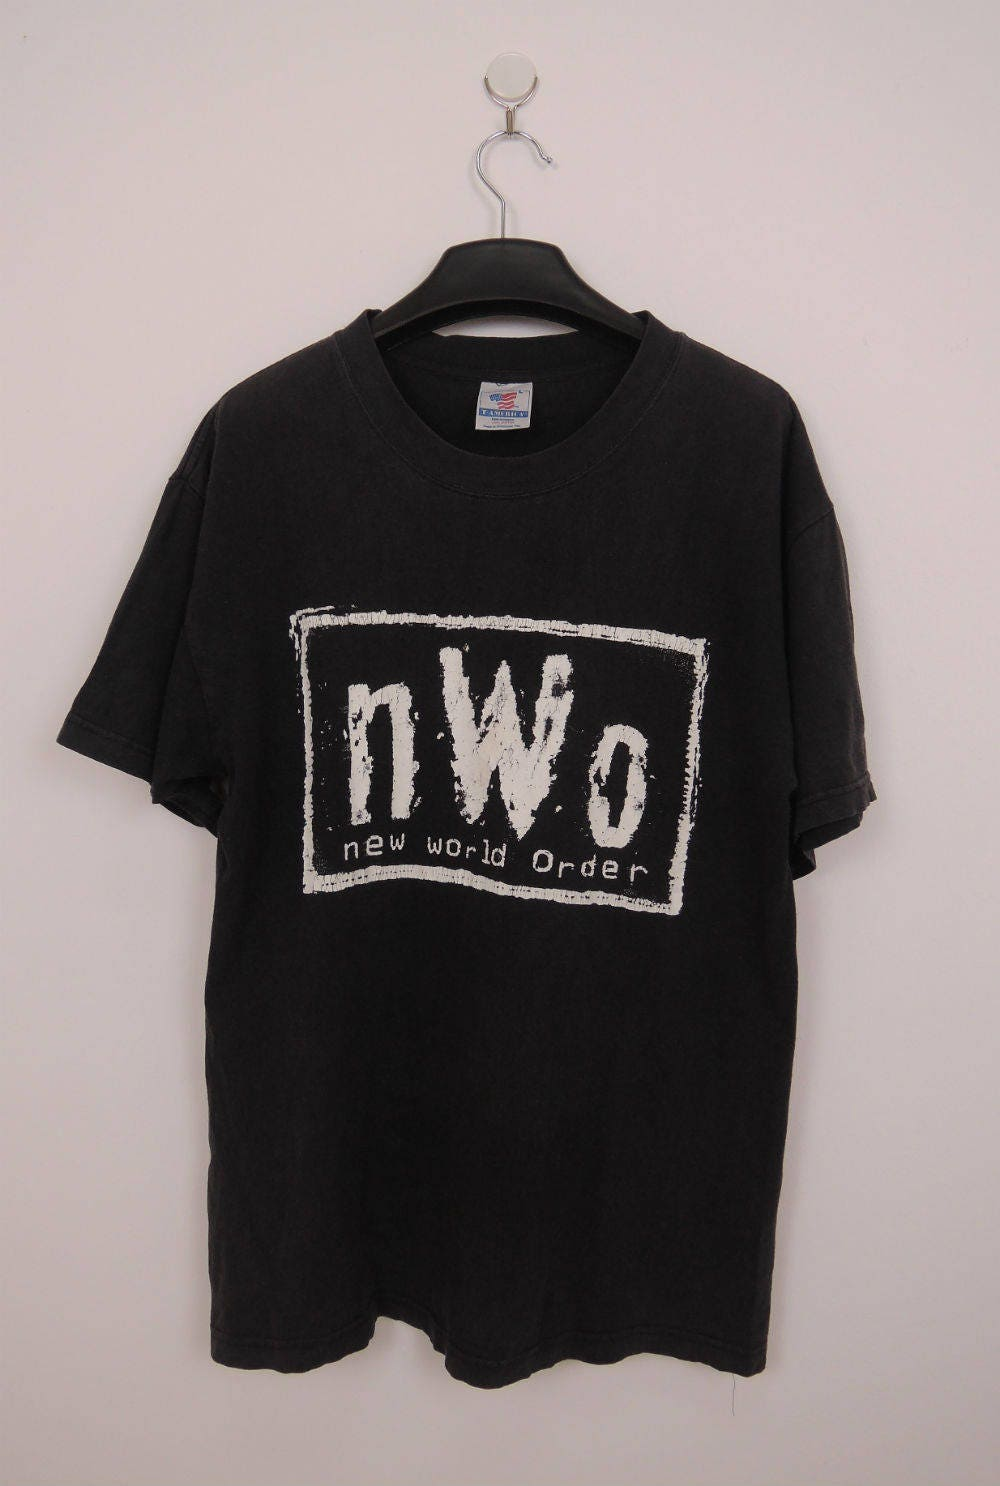 Vintage NWO New World Order T-Shirt Swag Street Wrestling Wear Top Tee Size L 0435FtUjCt